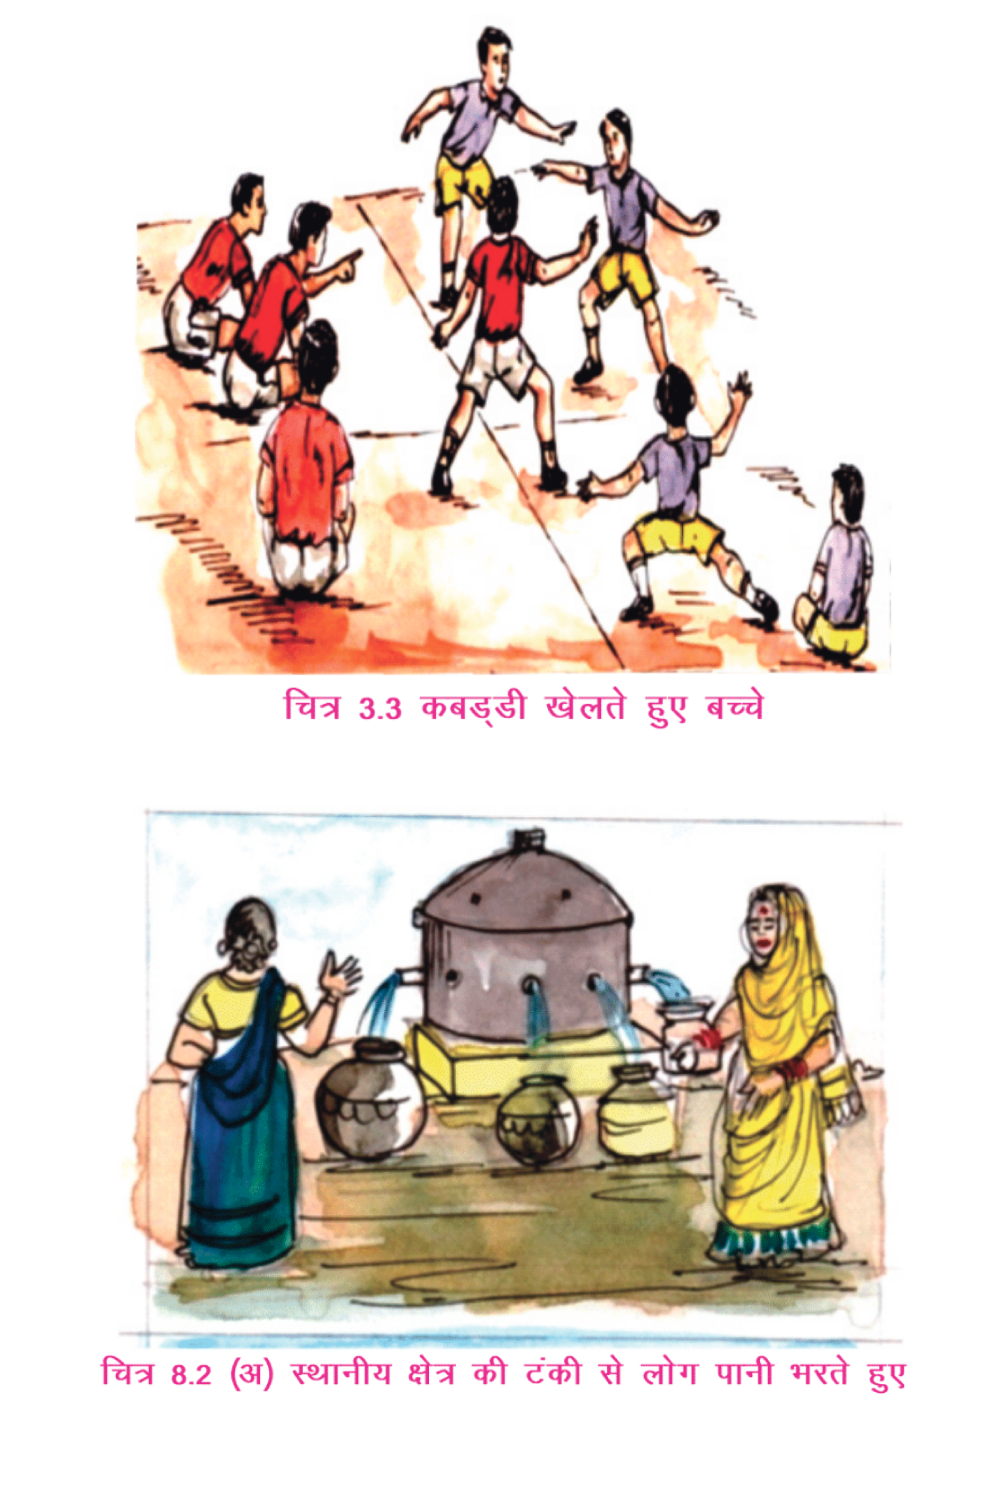 Most visuals and illustrations in the textbooks reinforce gender stereotypes.